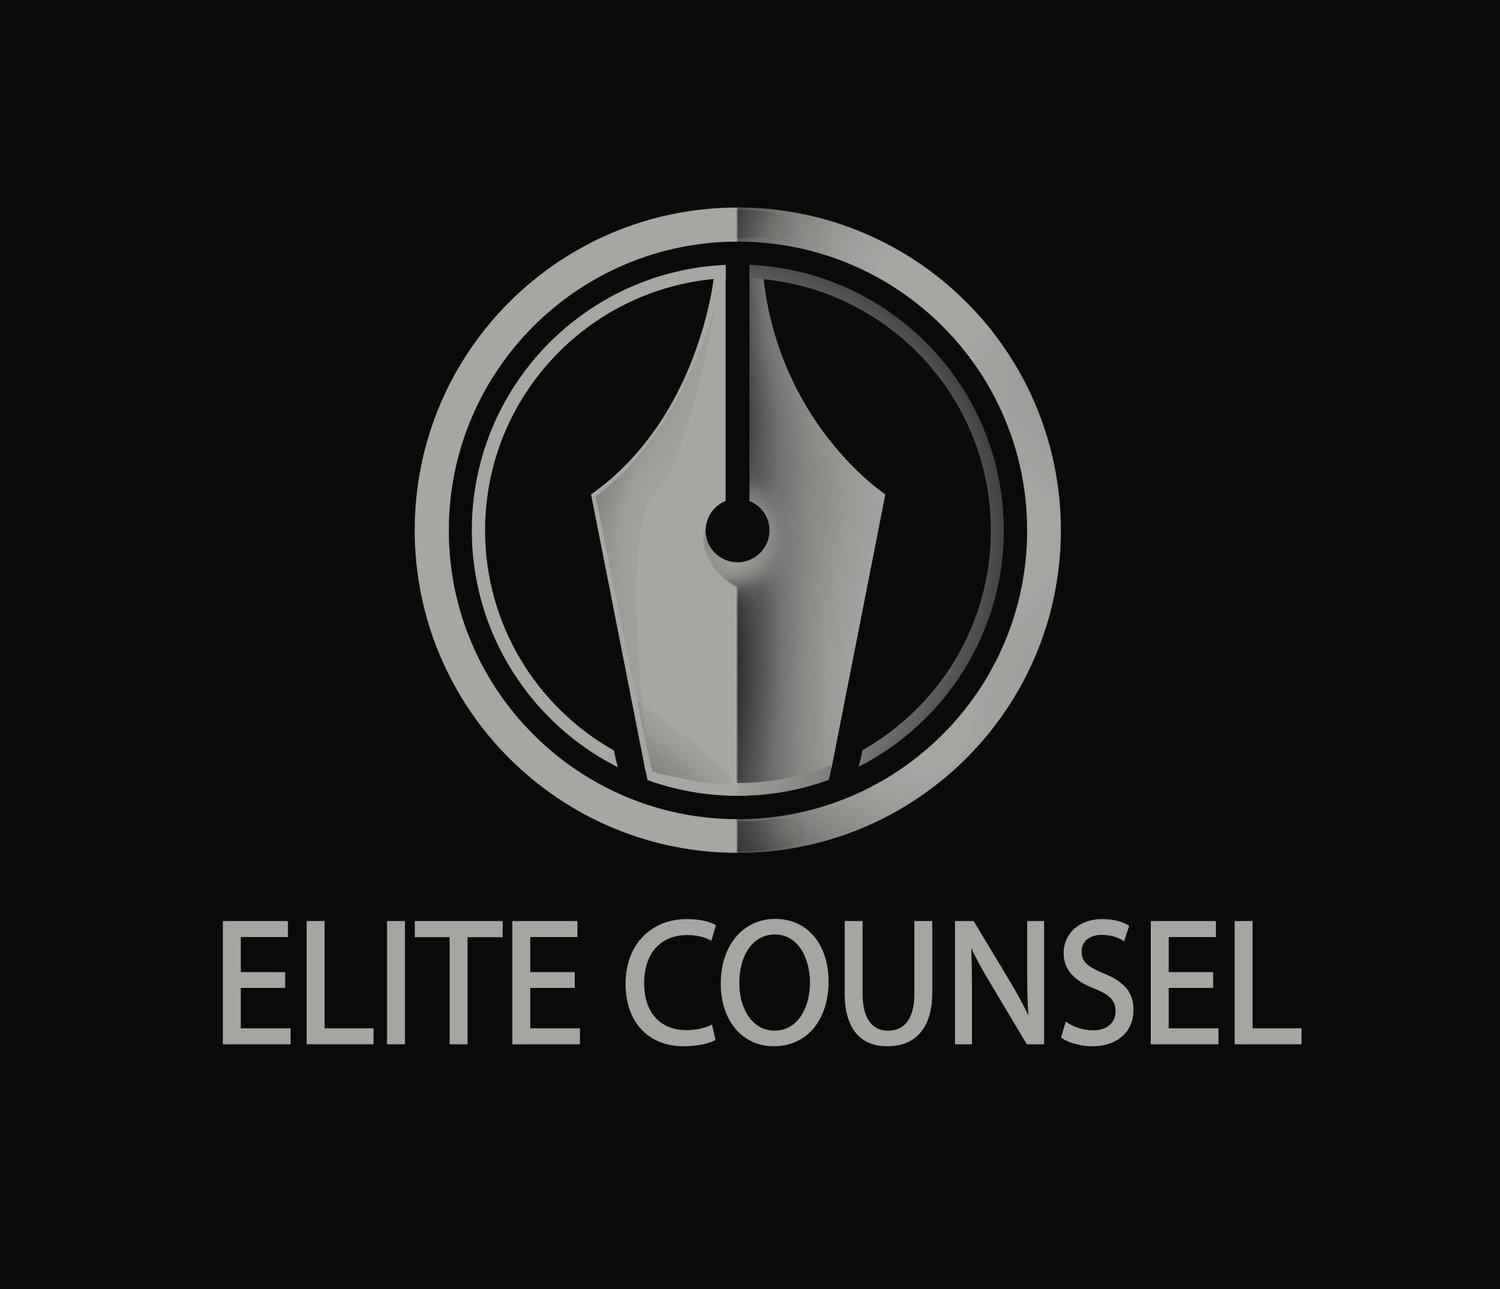 ELITE COUNSEL